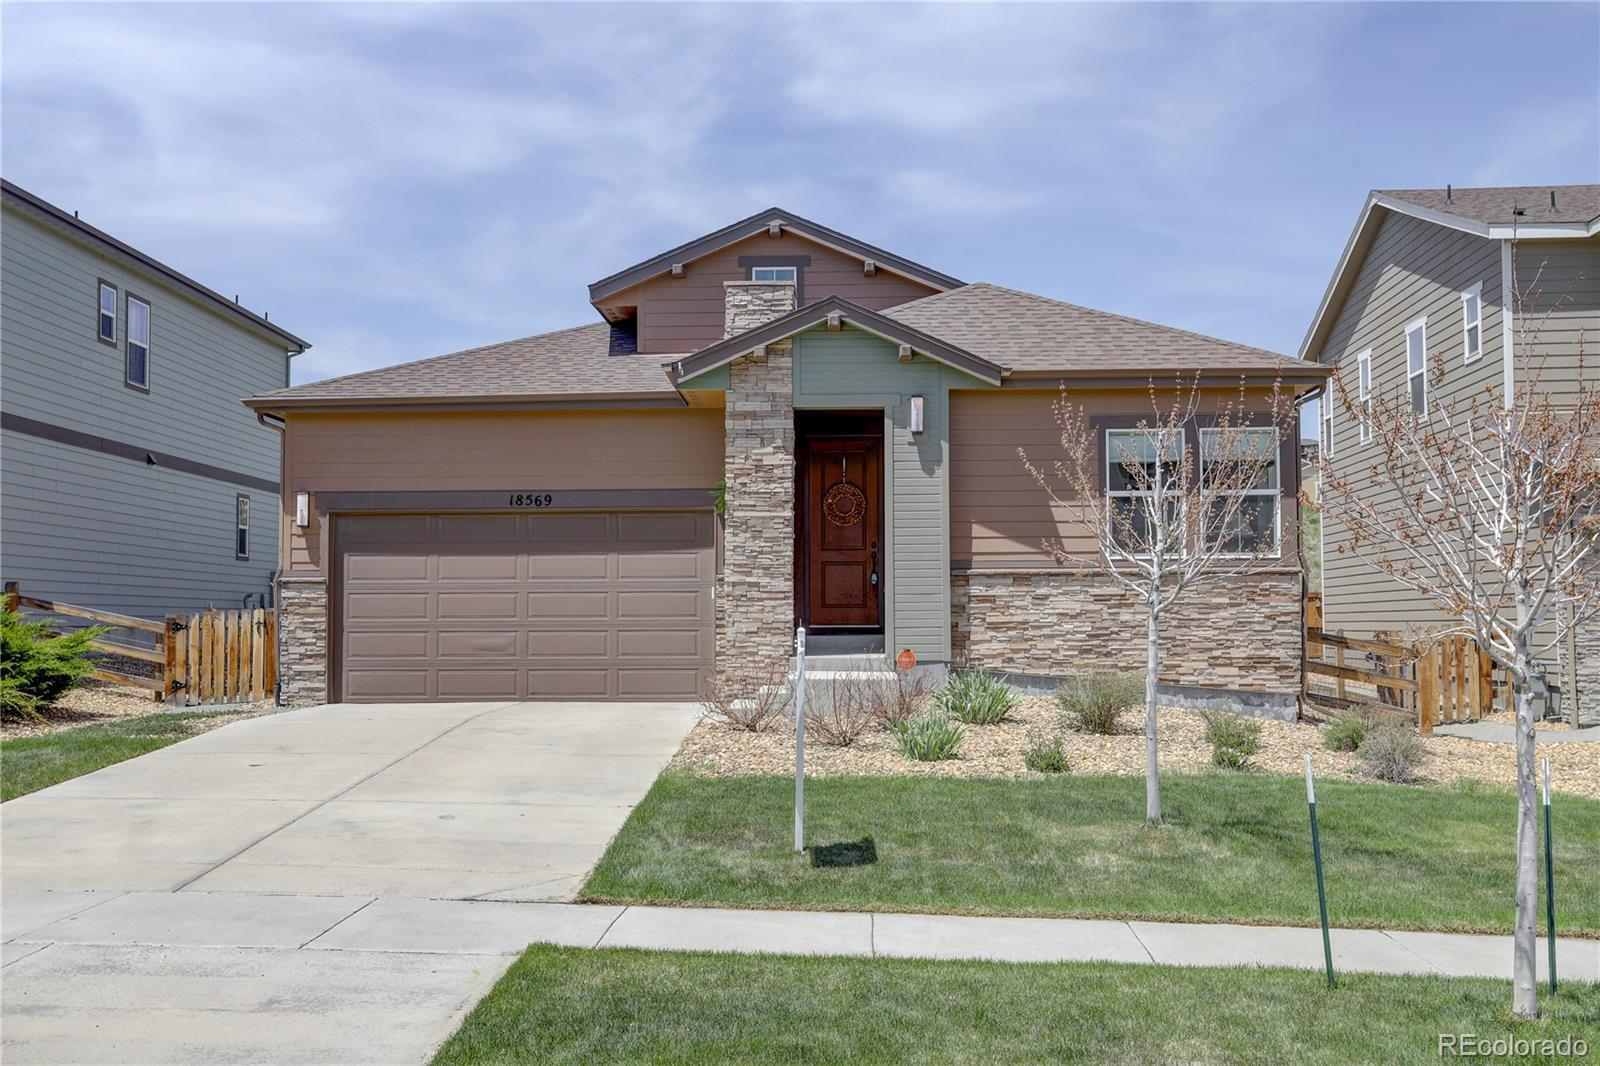 18569 W 84th Place, Arvada, CO 80007 - #: 7416820